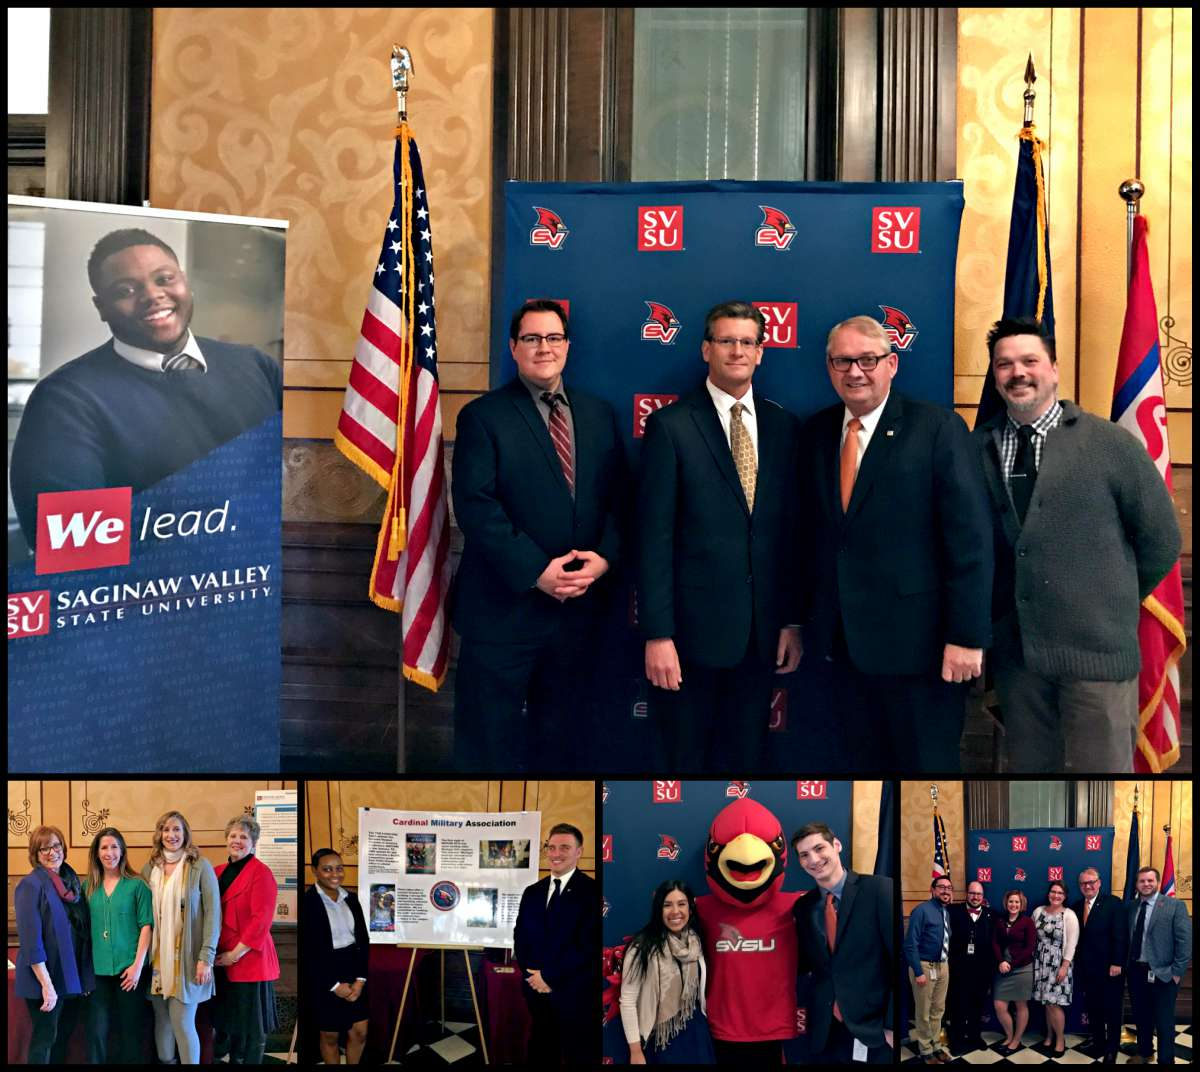 Cardinals in the Capitol gathering in Lansing. A caravan of students, staff and faculty traveled there to participate in a poster session/luncheon in the State Capitol building, as well as a legislative reception in the early evening at a nearby restaurant.